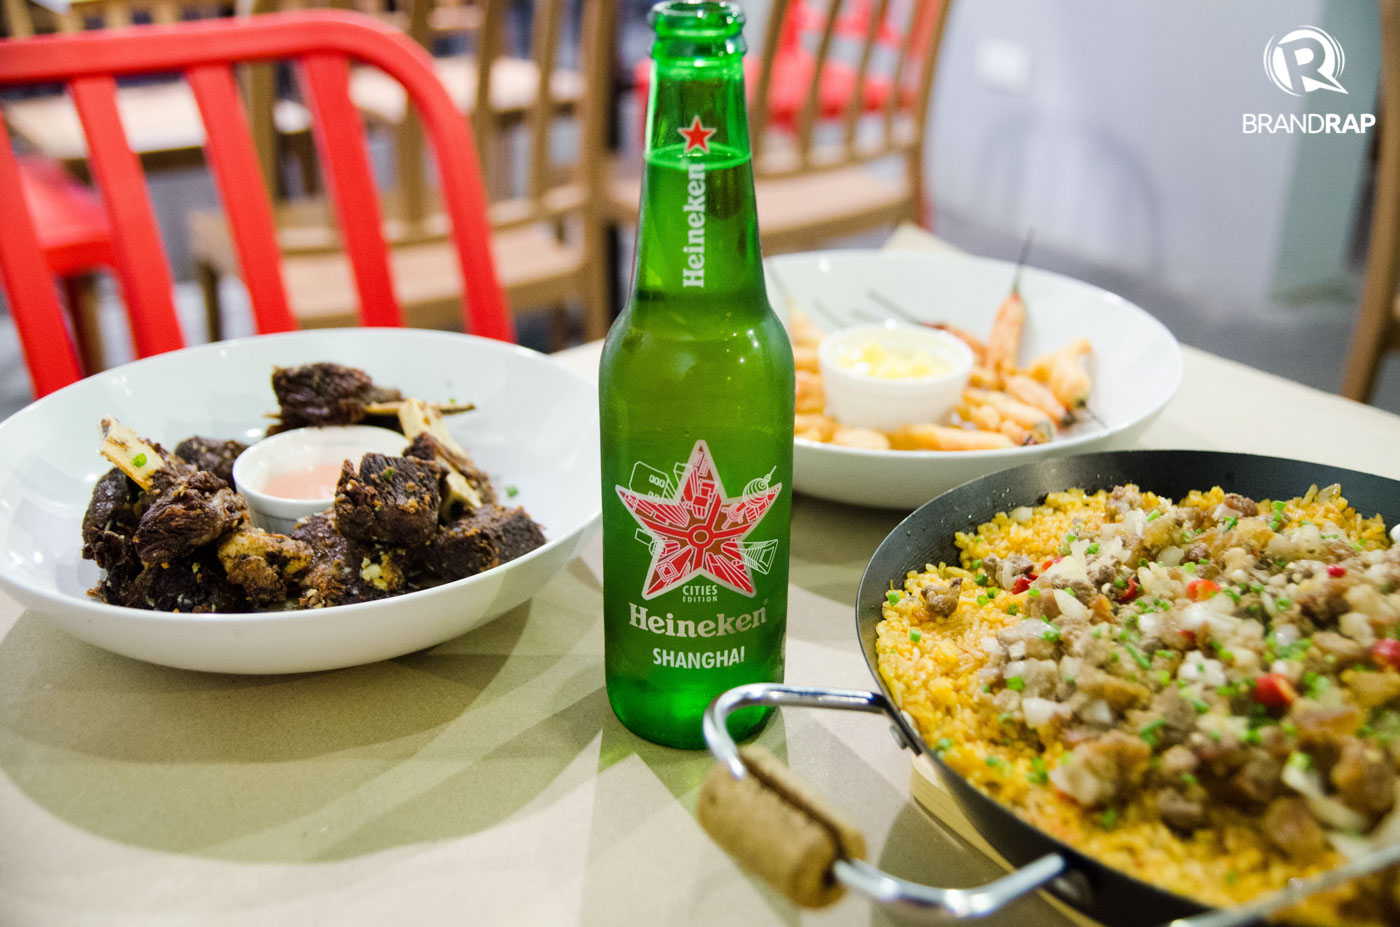 MEALS FOR GROUPS. Enjoy a cold bottle of beer with Minokaua fare like beef riblets, chili bombs, and Sisig Minokaua Rice. Other specialties include the Solar Eclipse (spicy rice cooked with siling labuyo), Lunar Eclipse (paella negra), and mussel pots. Photo by Pauee Cadaing/Rappler